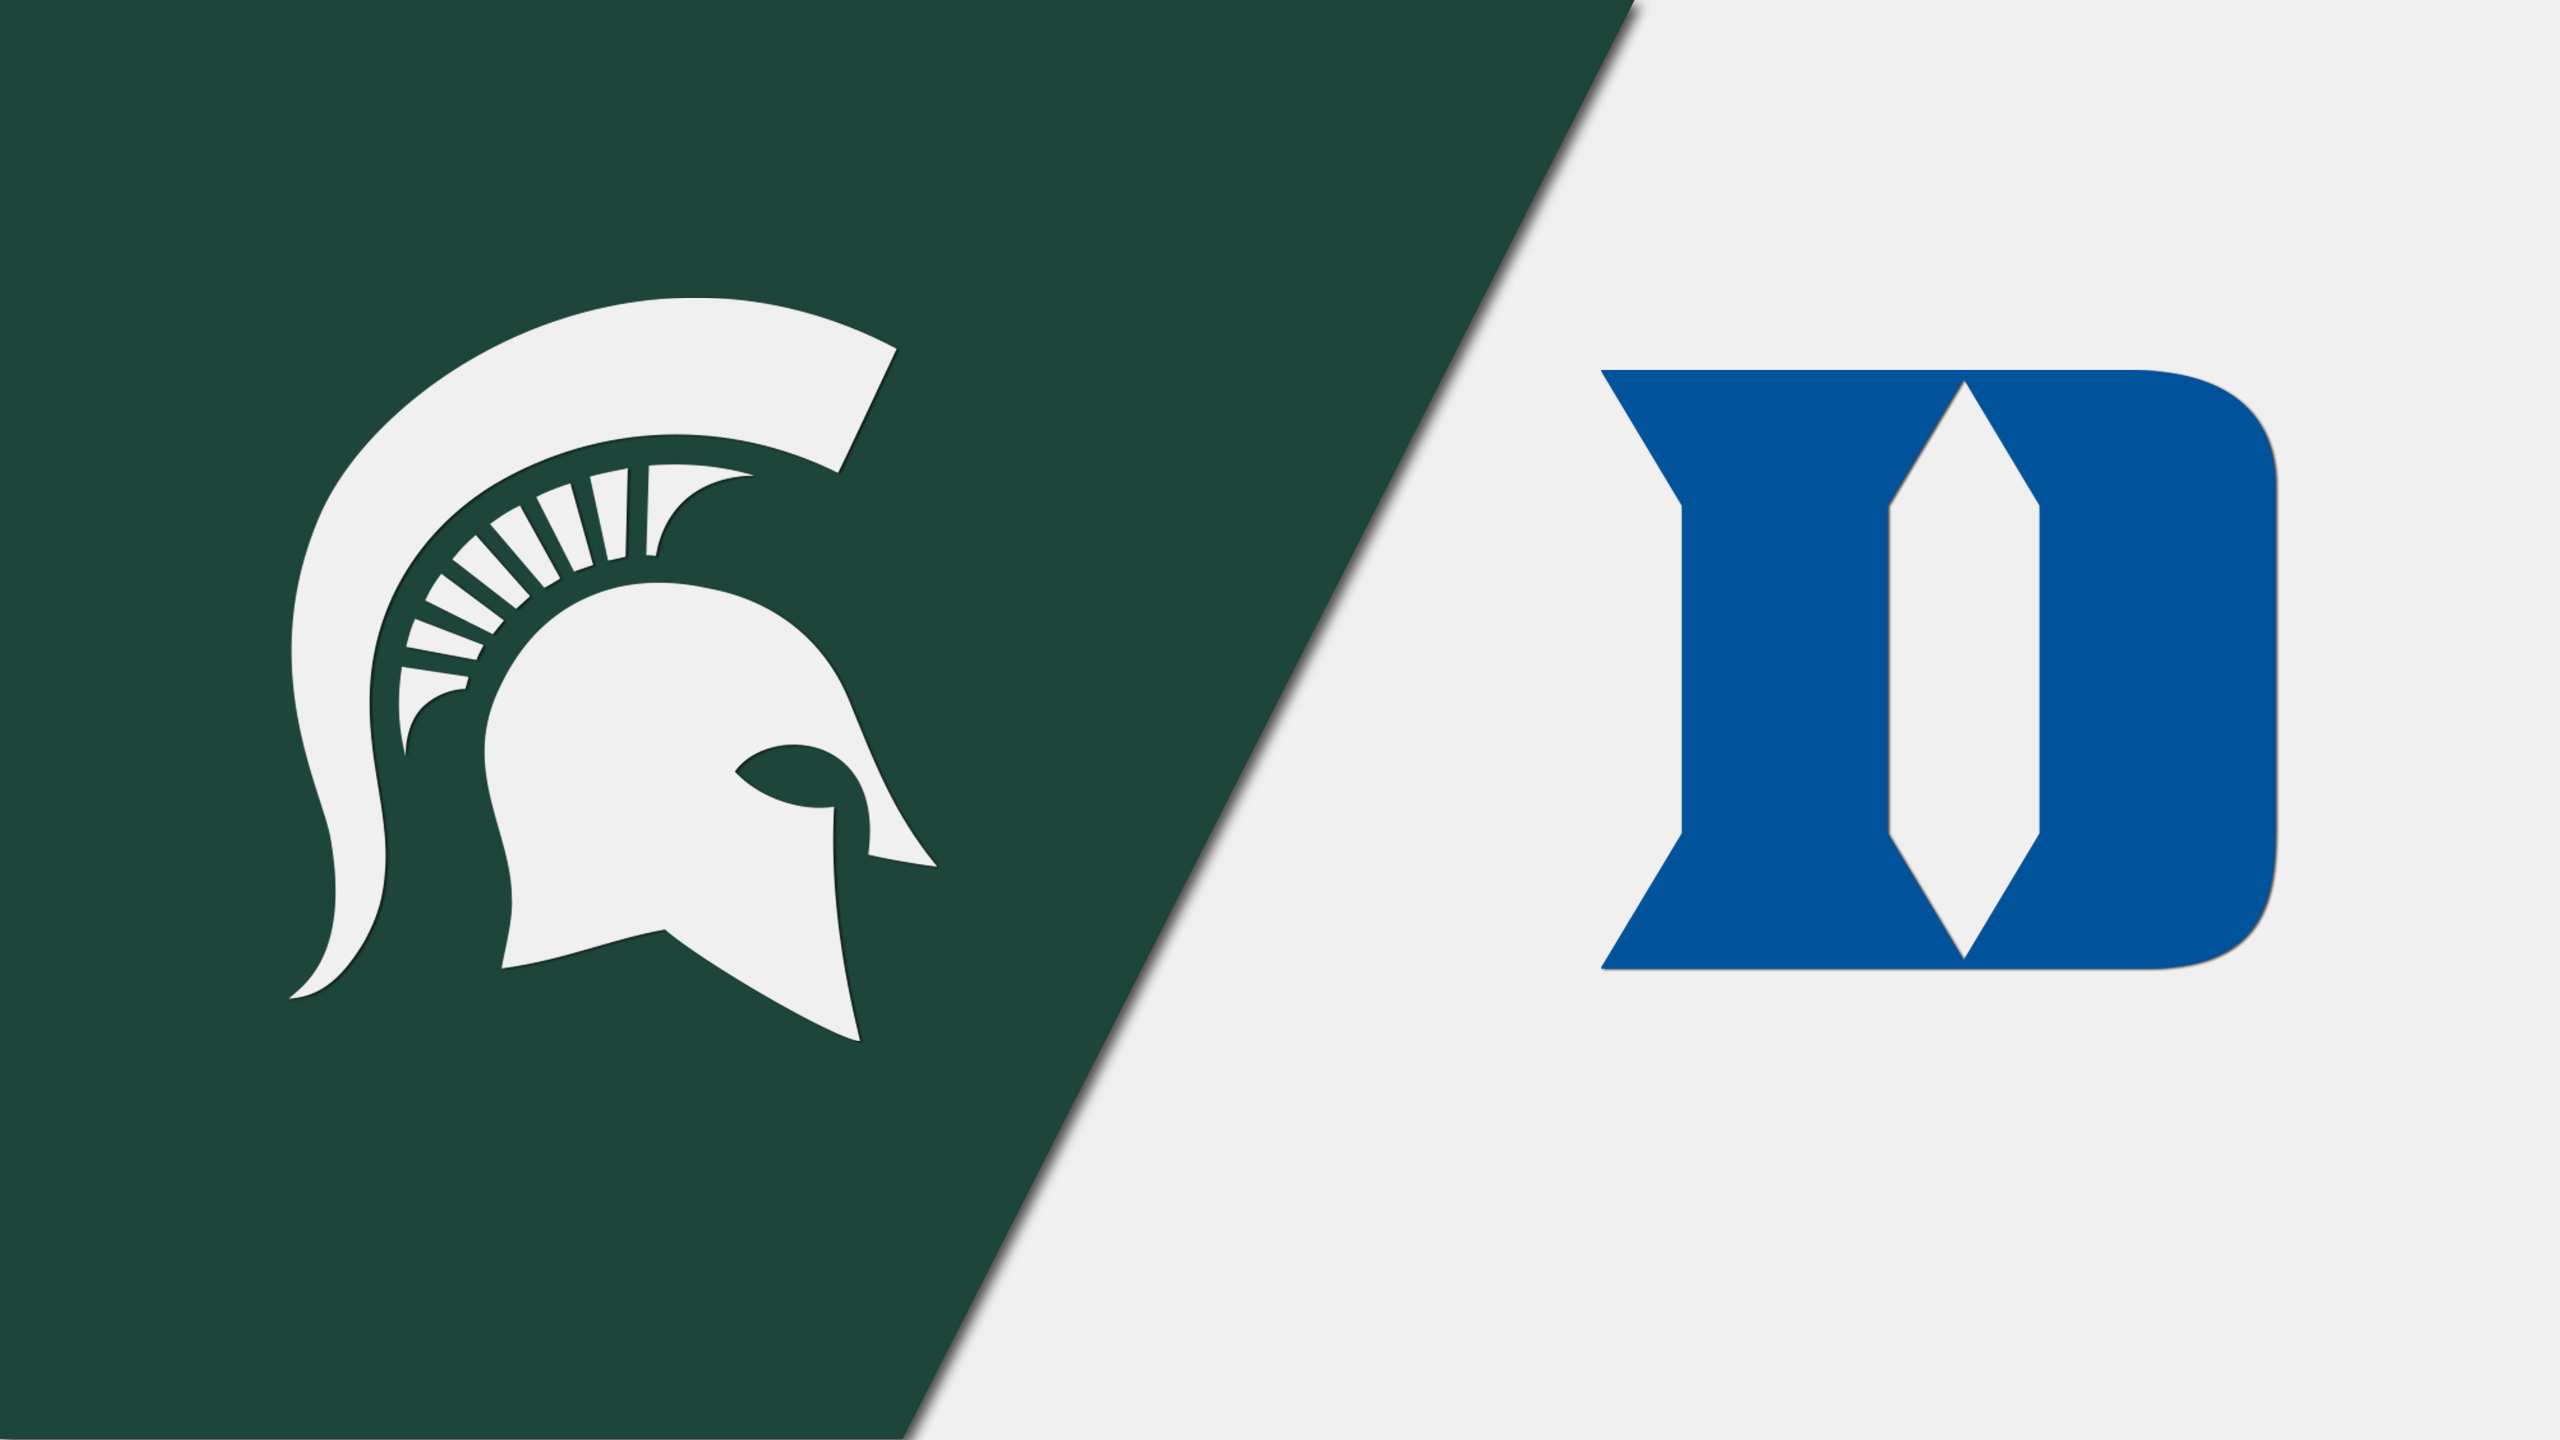 #6 Michigan State vs. #1 Duke (re-air)